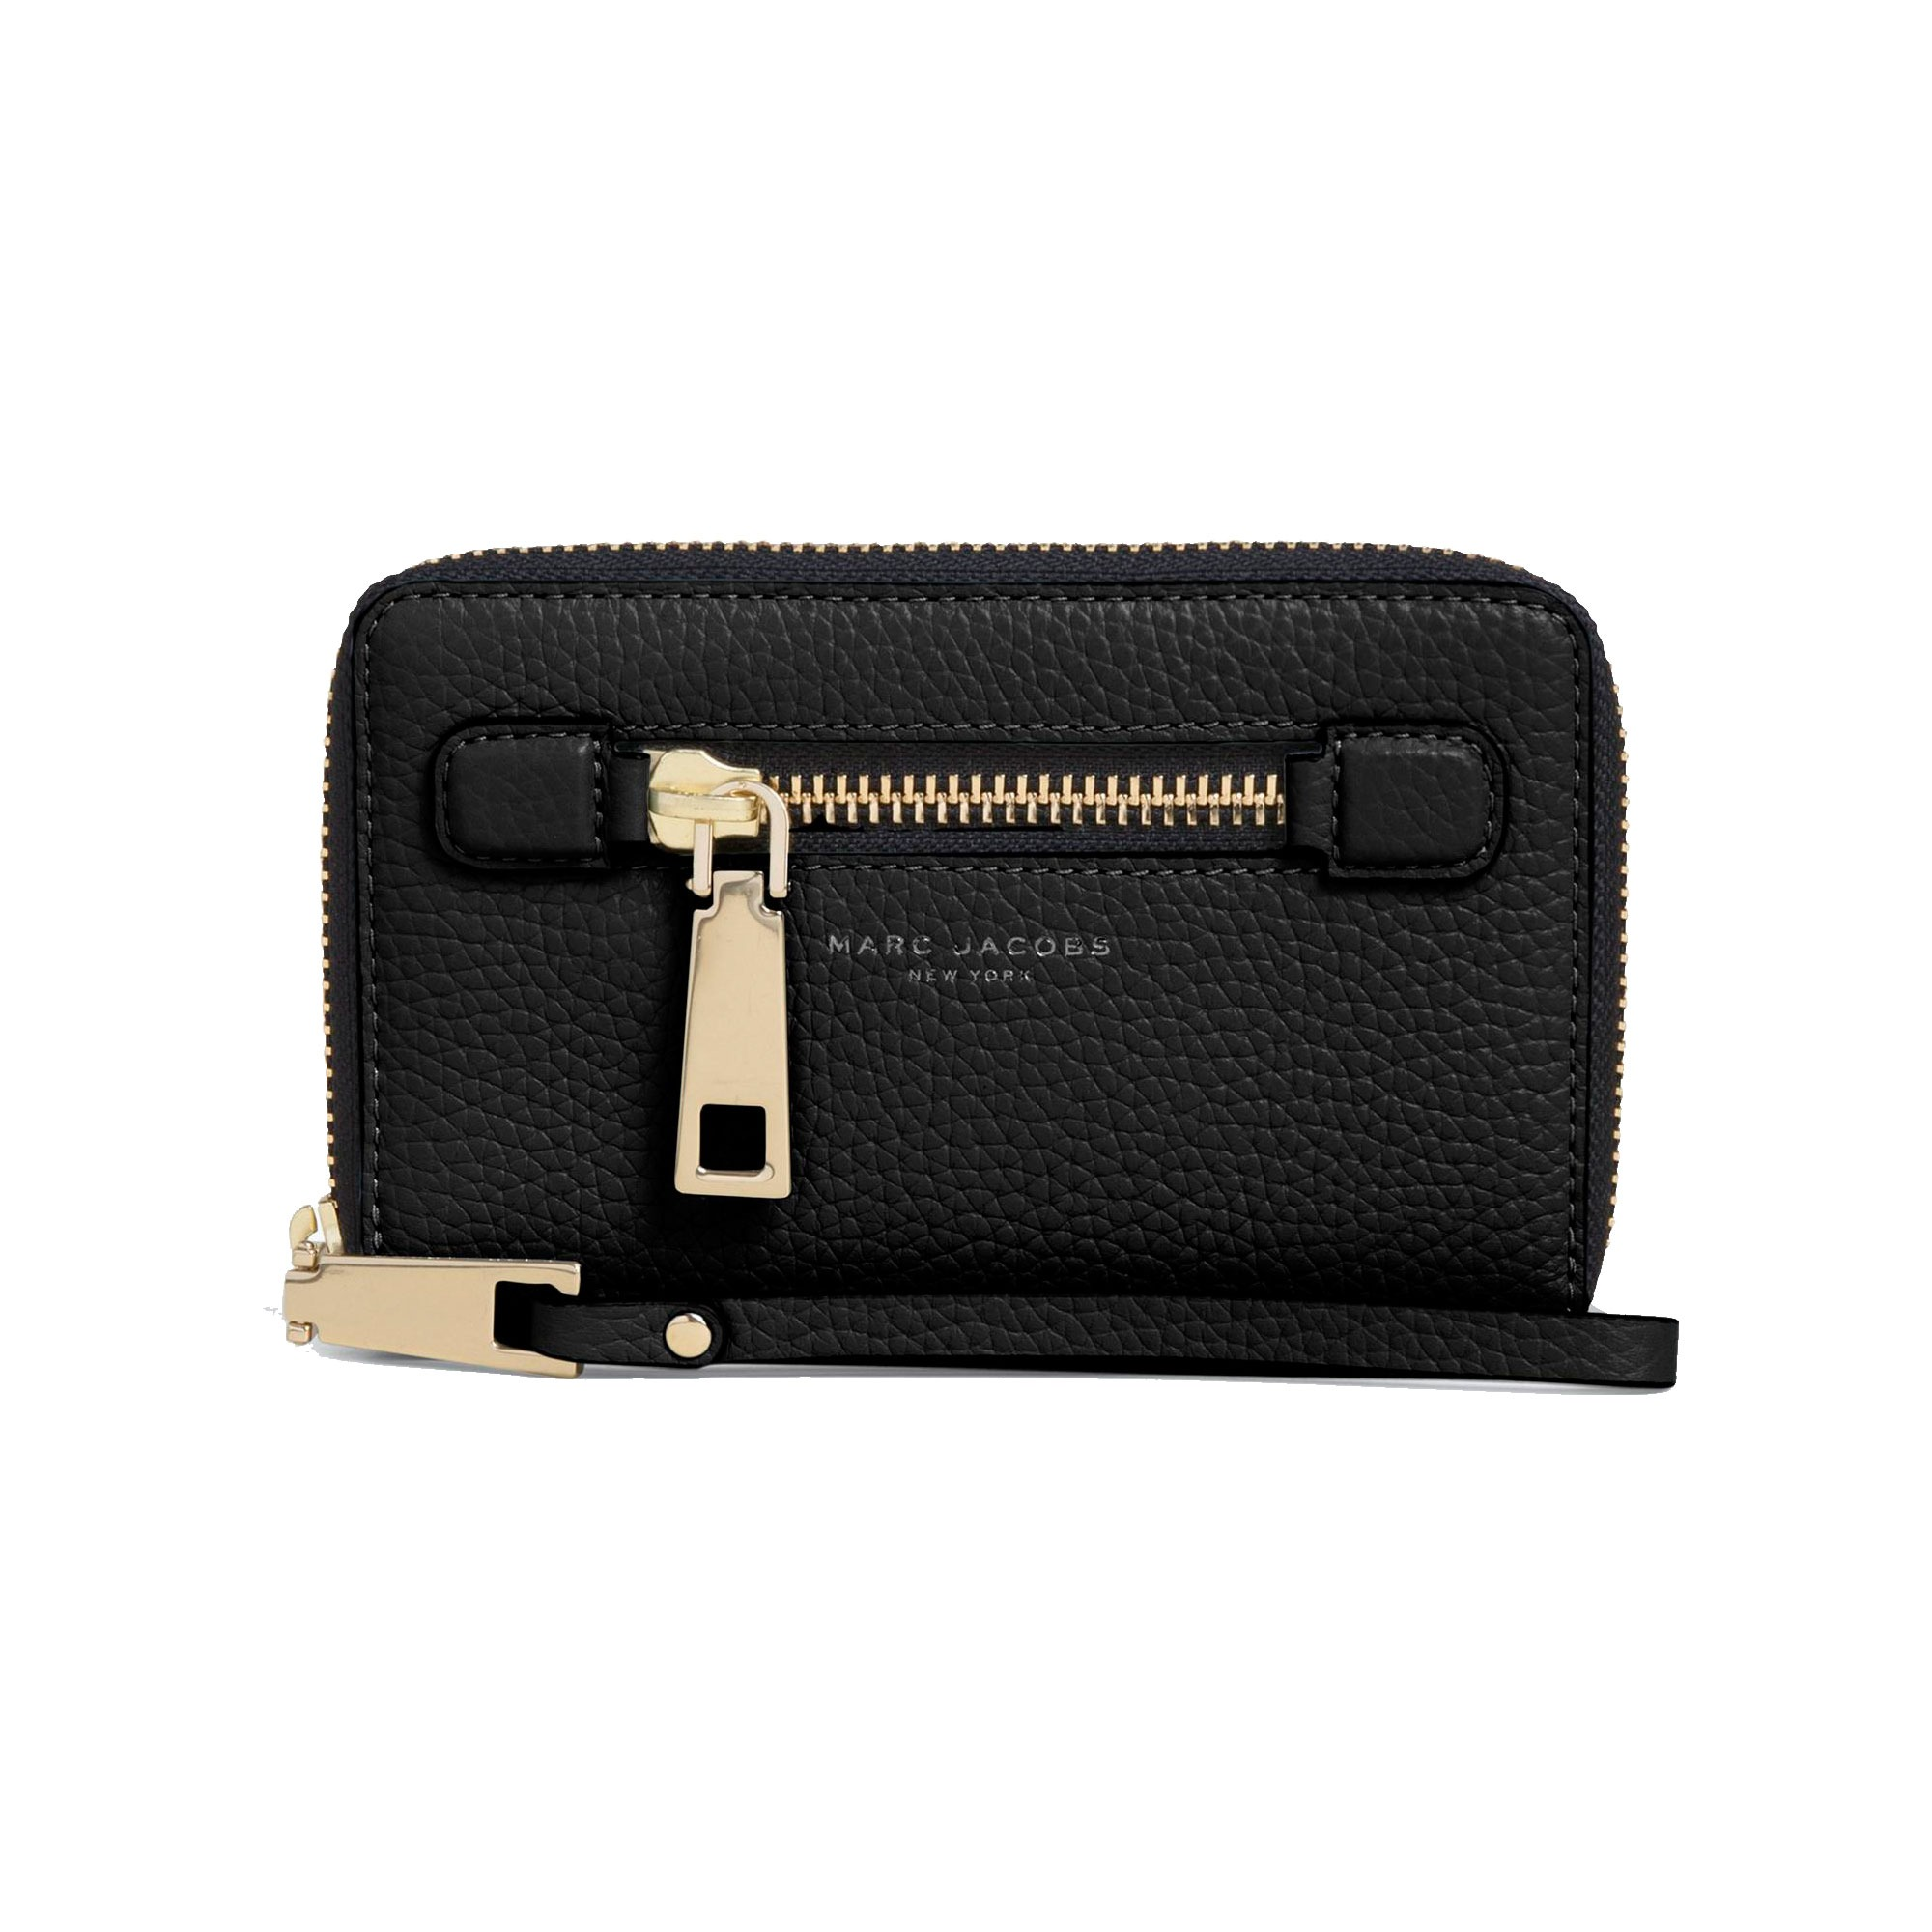 d8bfee06d58 Marc Jacobs - Gotham Zip Phone Wristlet, Black - Phigo Fine Luxury